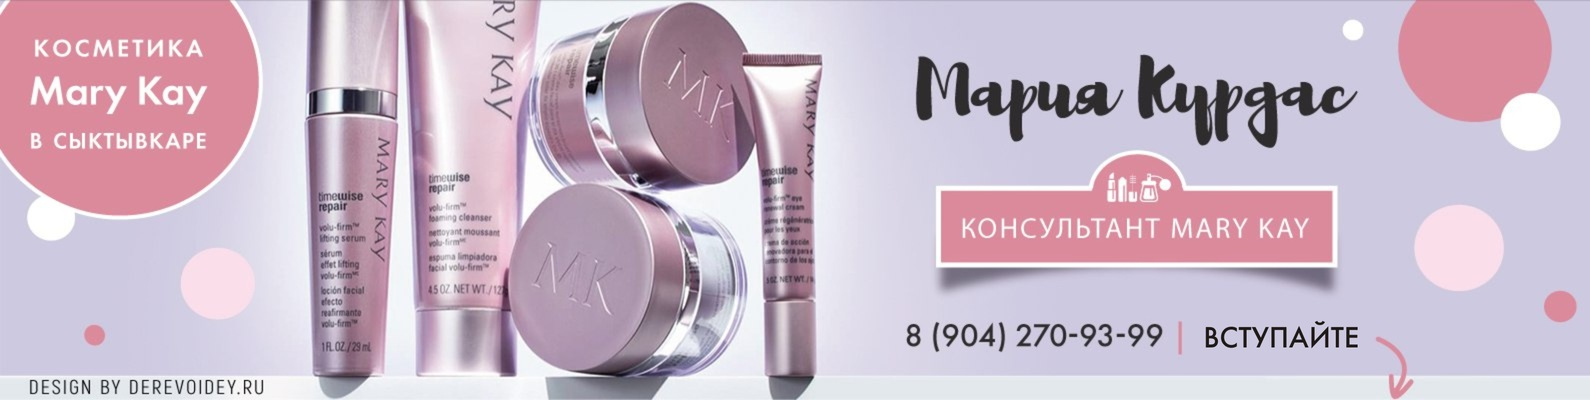 what new ec models did mary kay implement The mary kay way is as an actionable way to implement yet there was nothing groundbreaking about her business model, or about her philosophies mary kay's.